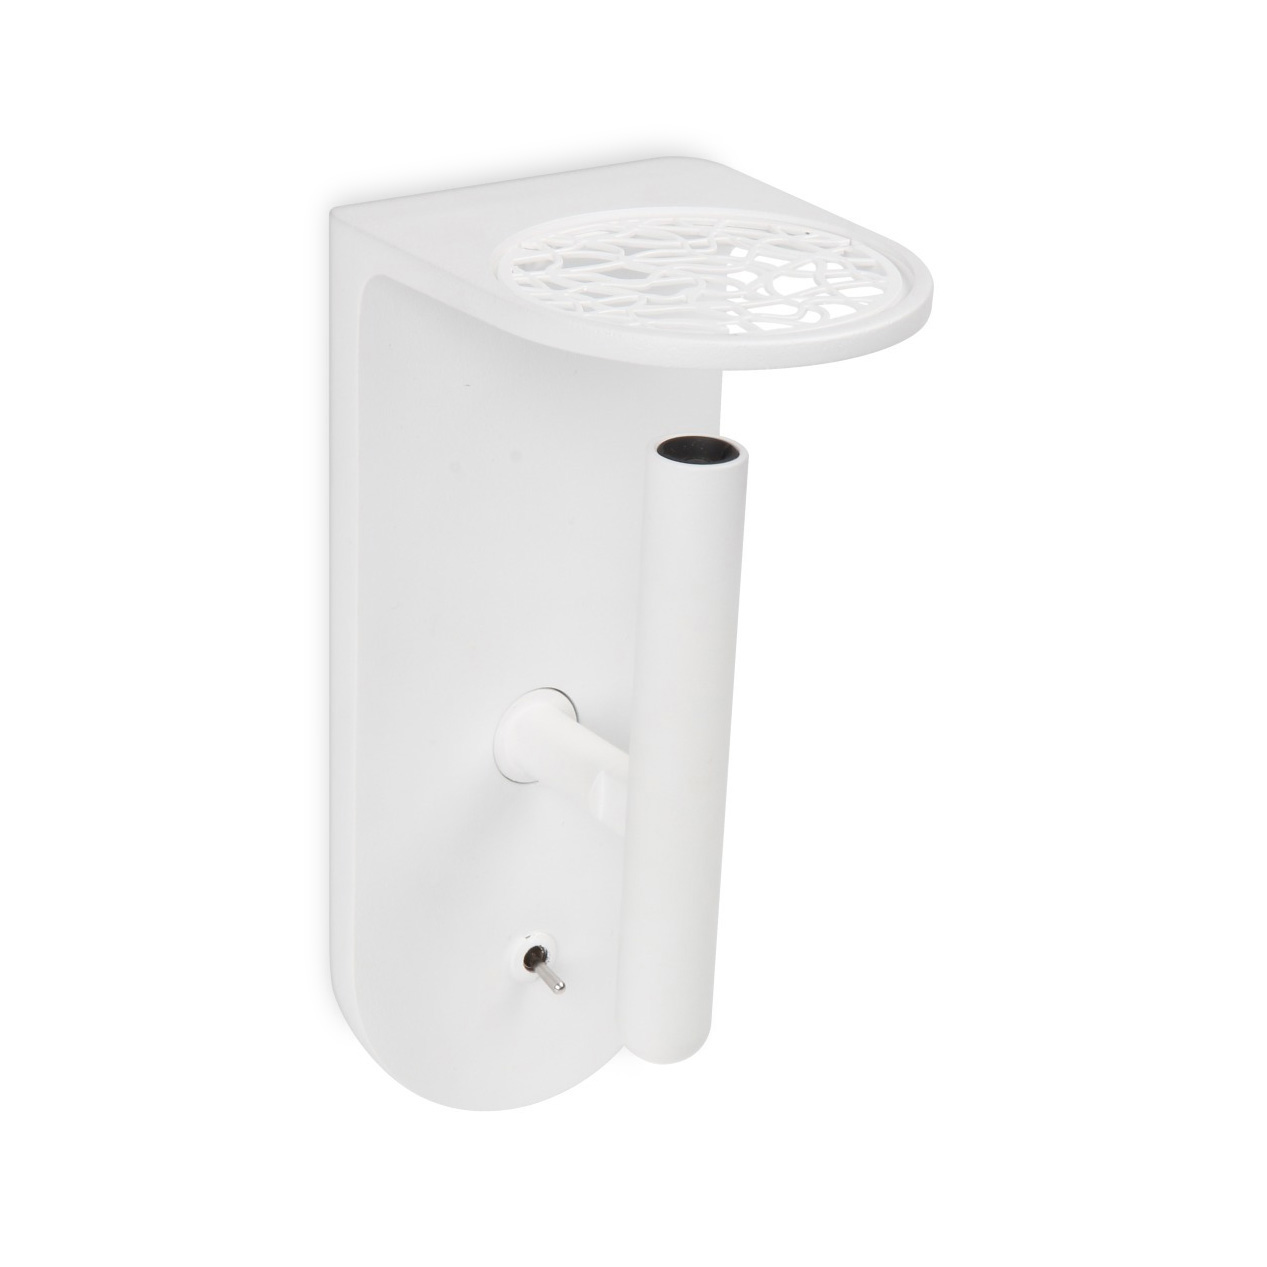 Linea Light S.r.l. Linea LED-Wandleuchte 2Nights W2 weiß 7976